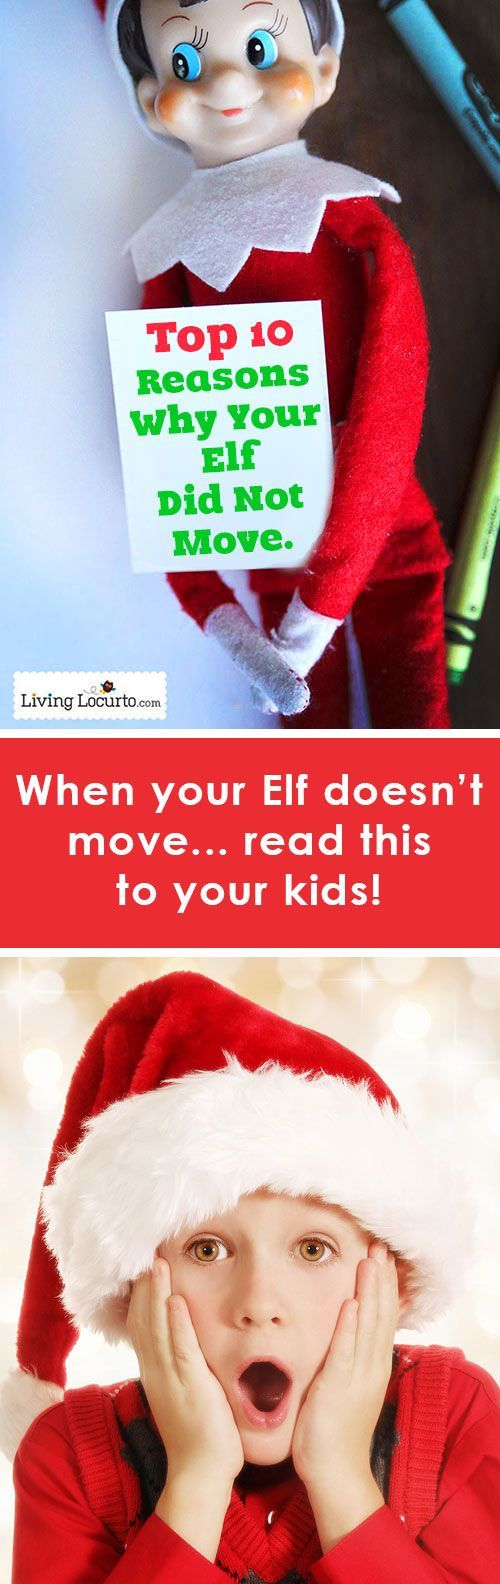 10 Facts for Kids to explain why their Elf on a Shelf might not have moved! Great for parents to read to kids.